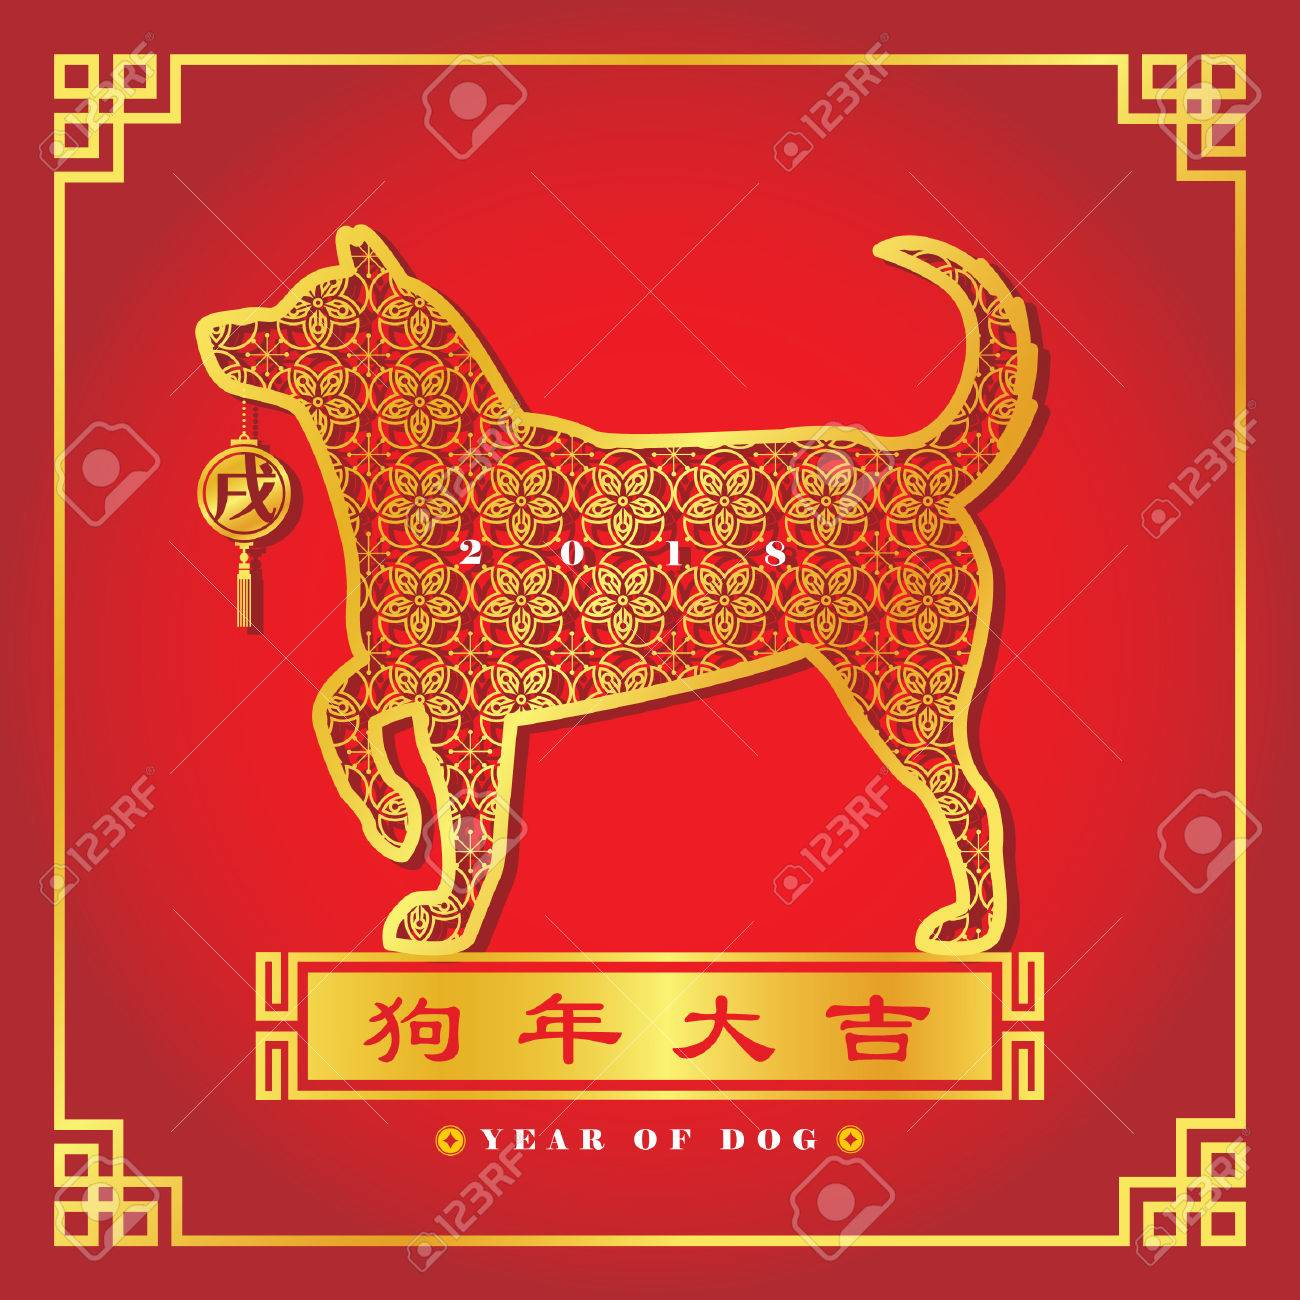 2018 Year Of Dog Chinese New Year Greeting Card Of Golden Dog